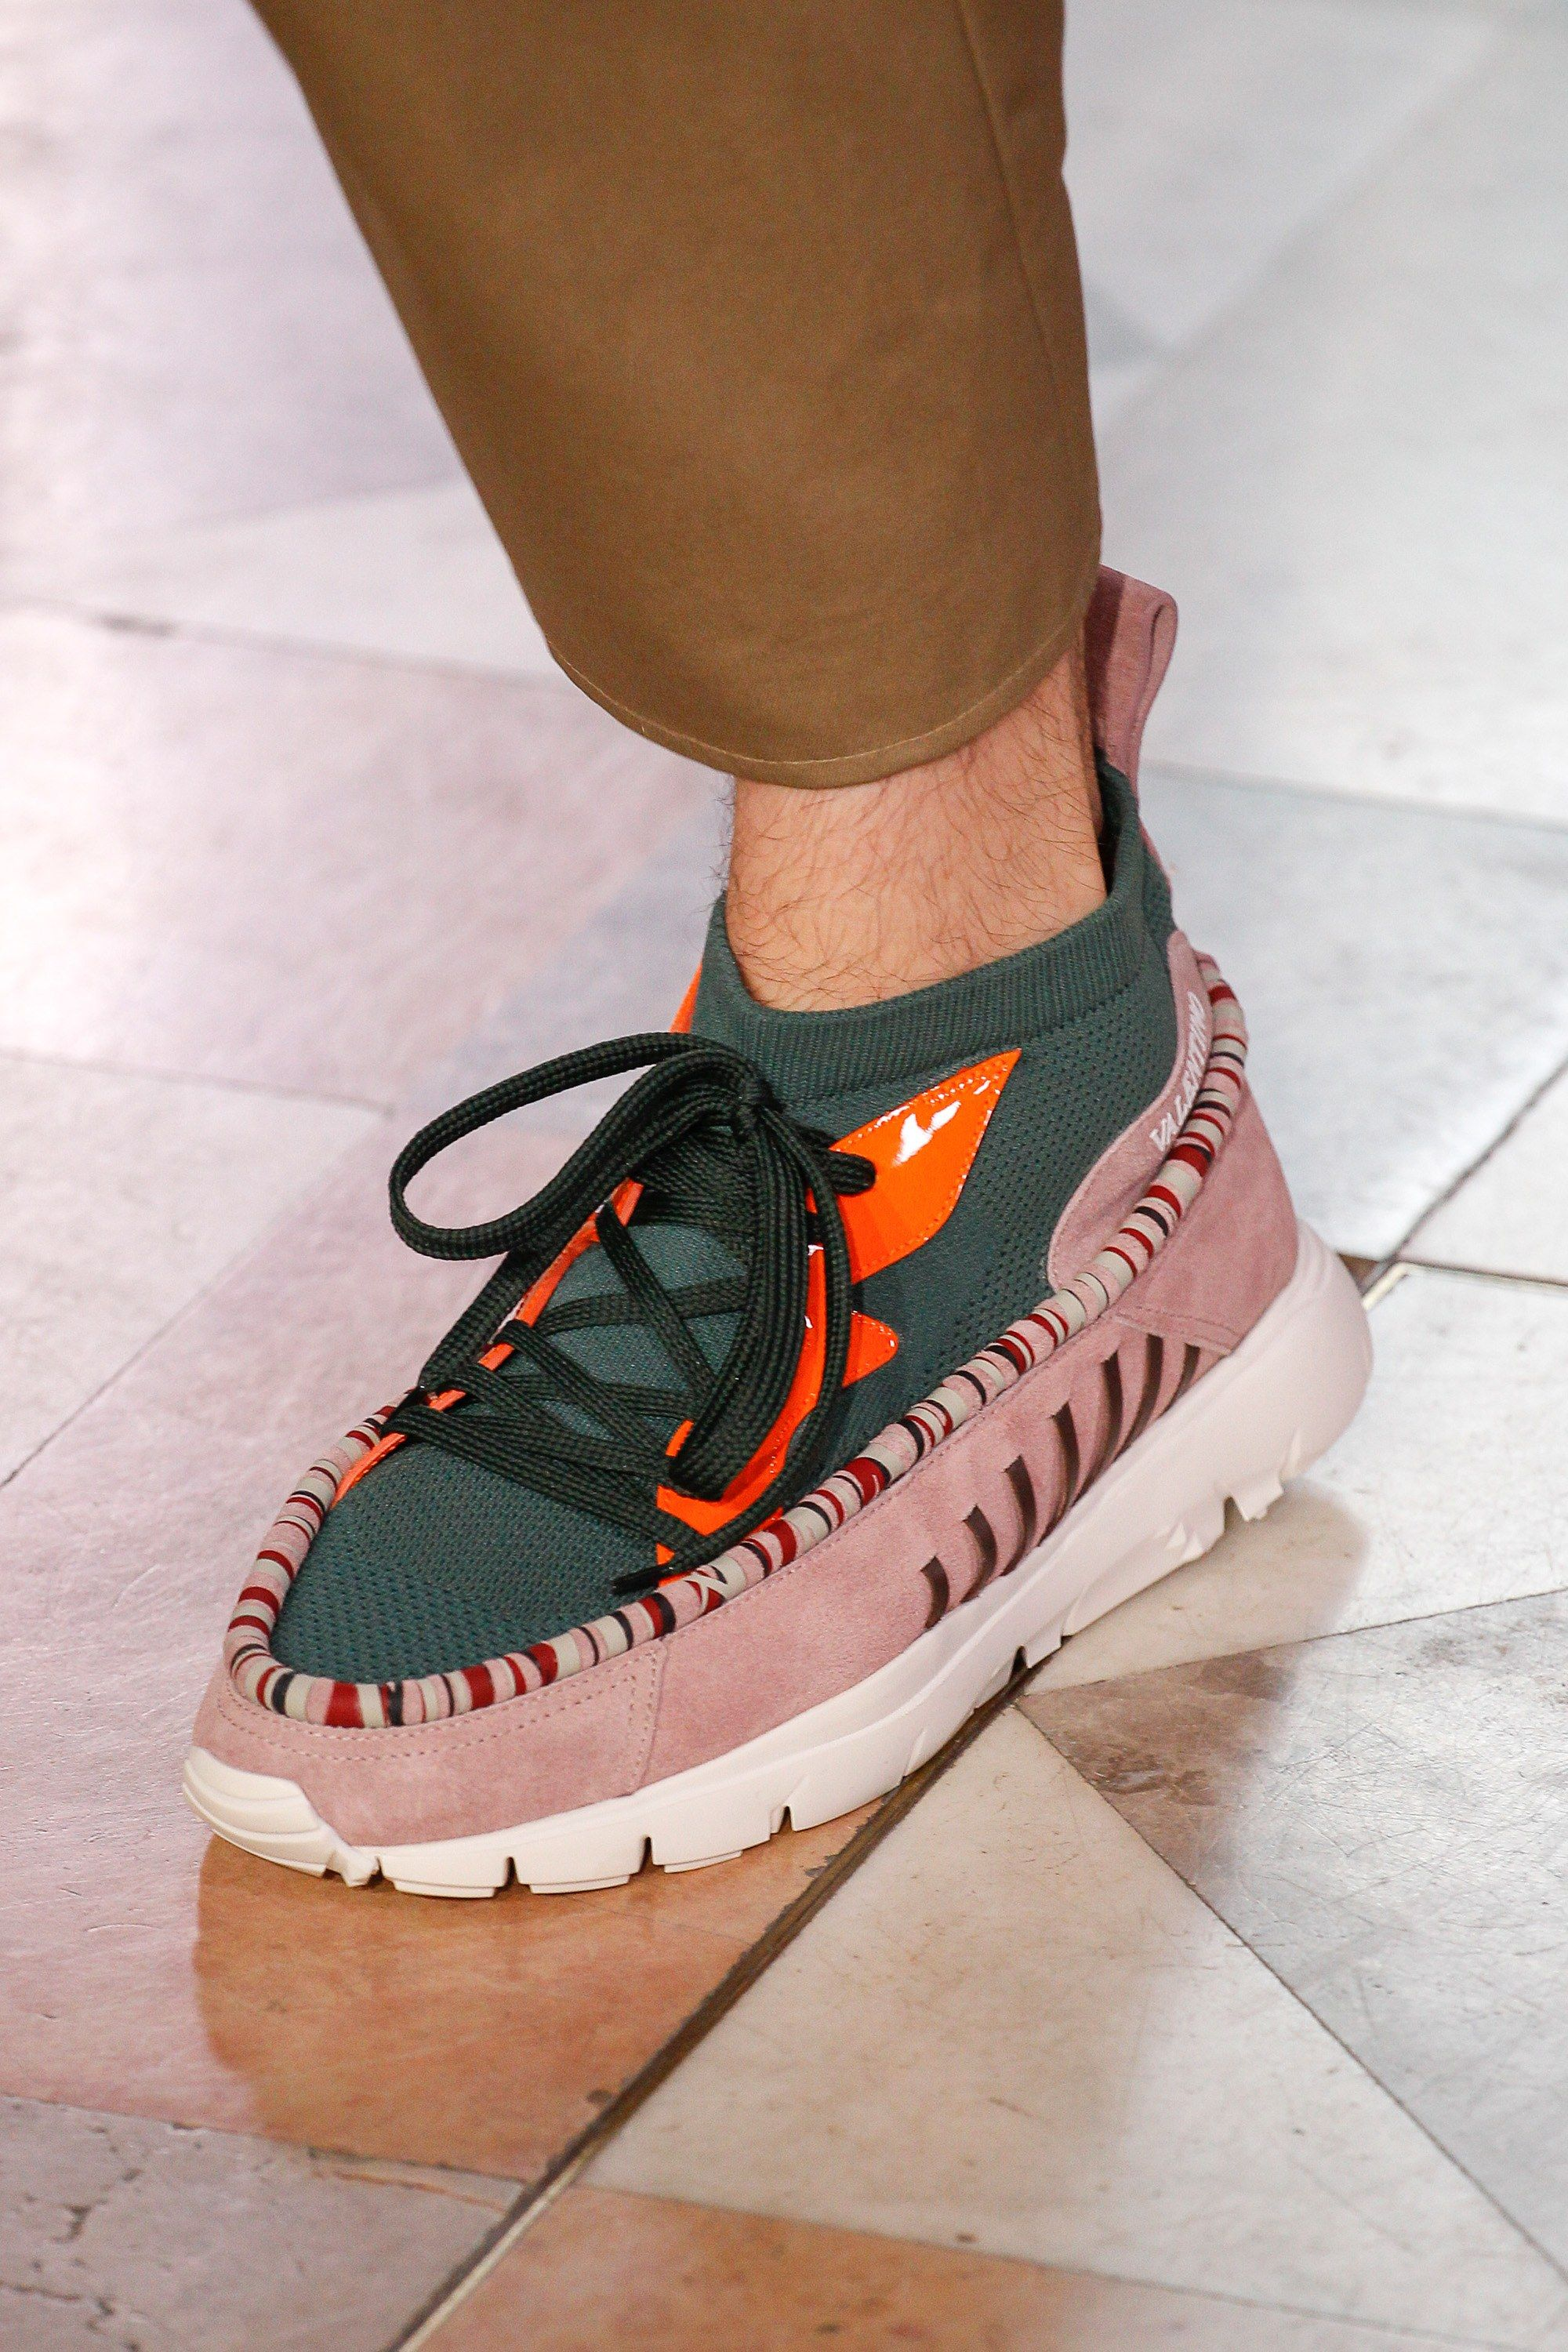 Spring 2018 Valentino ShowShoes Menswear Fashion Mens wOuZkXiTlP